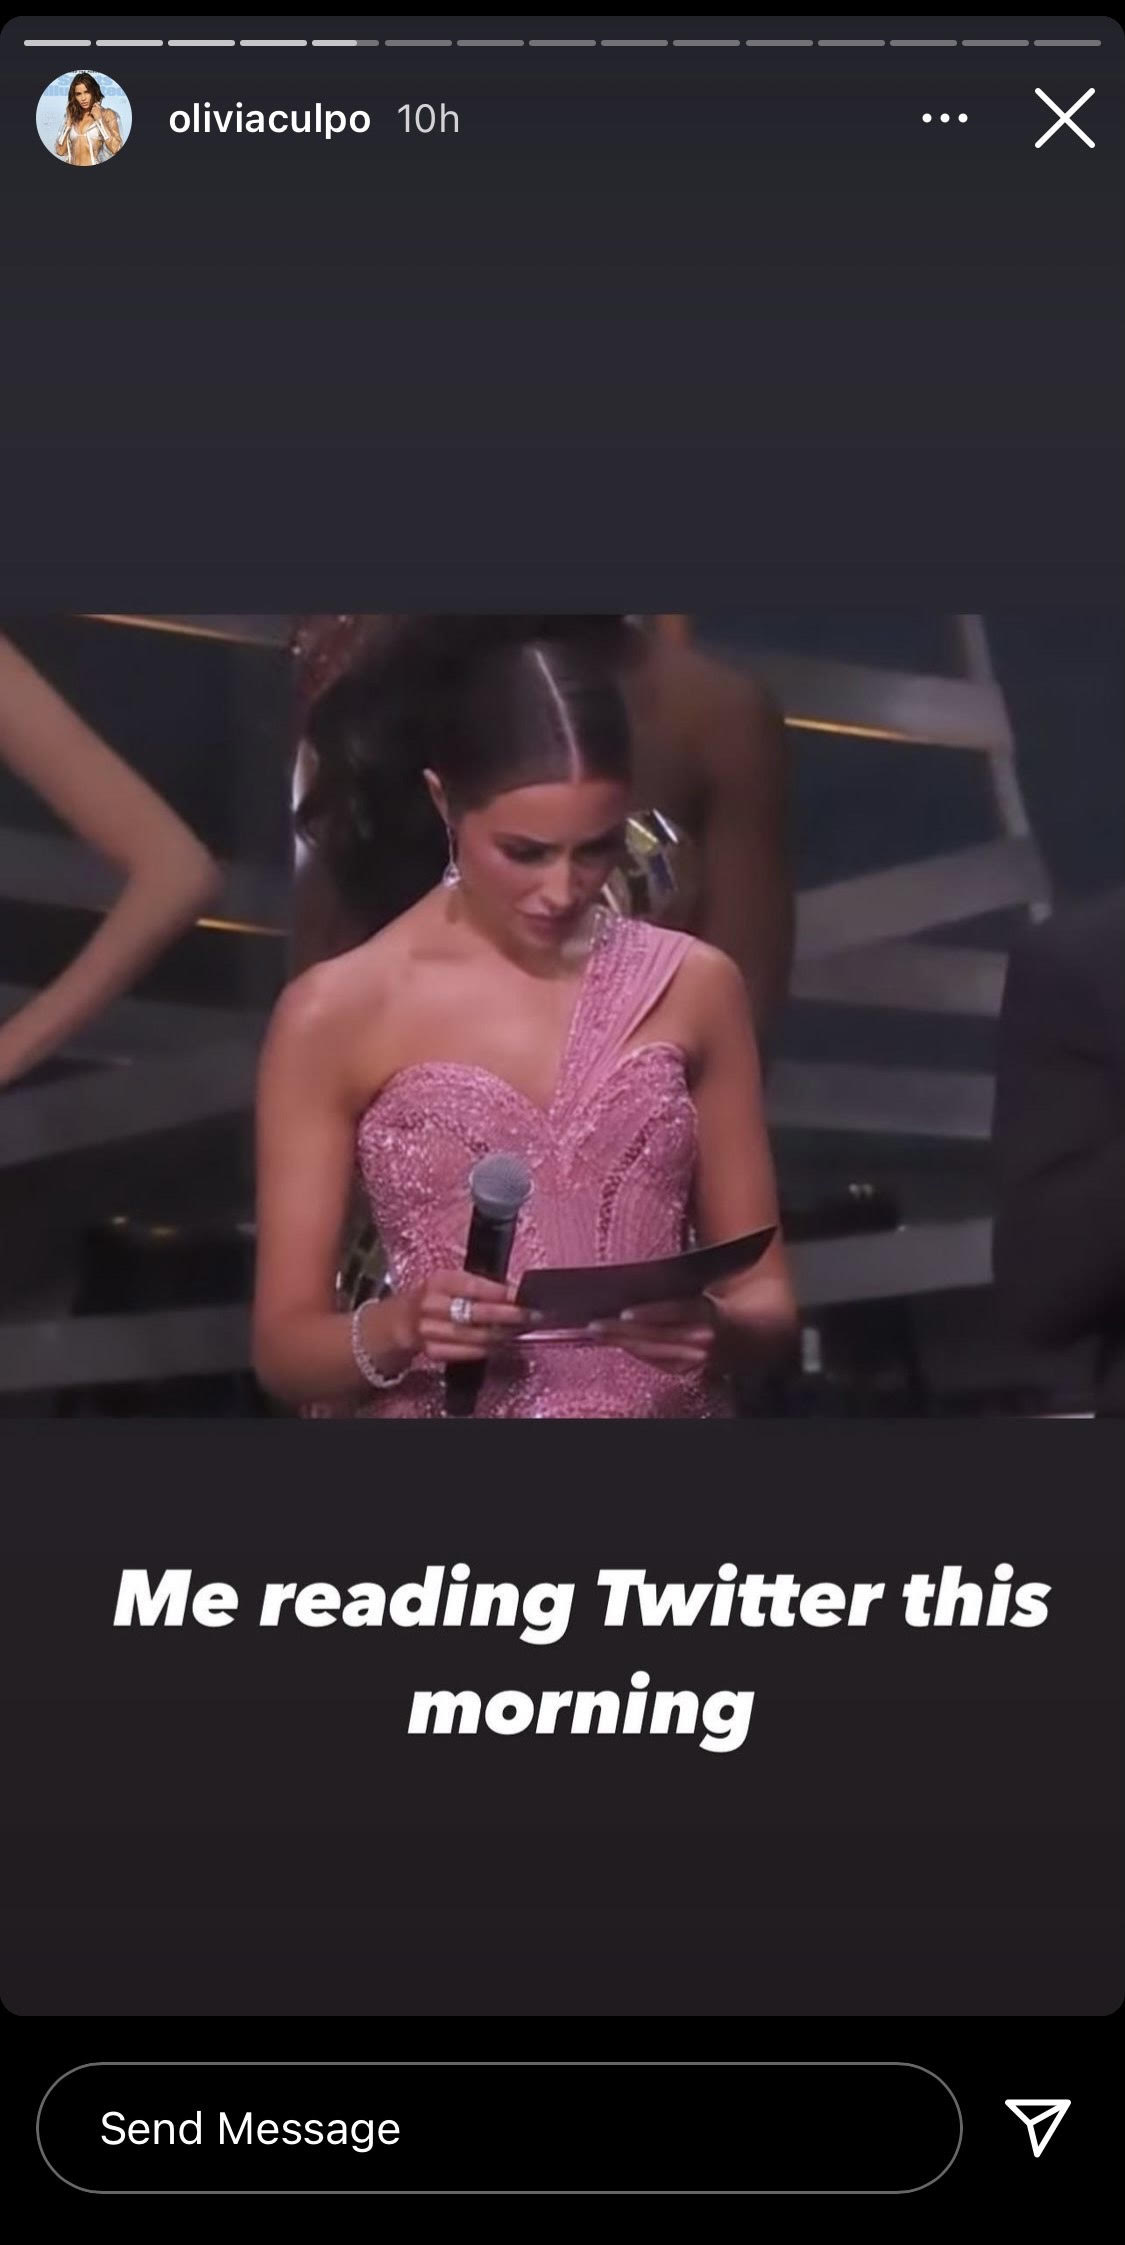 Olivia Culpo creating a meme out of herself about Twitter